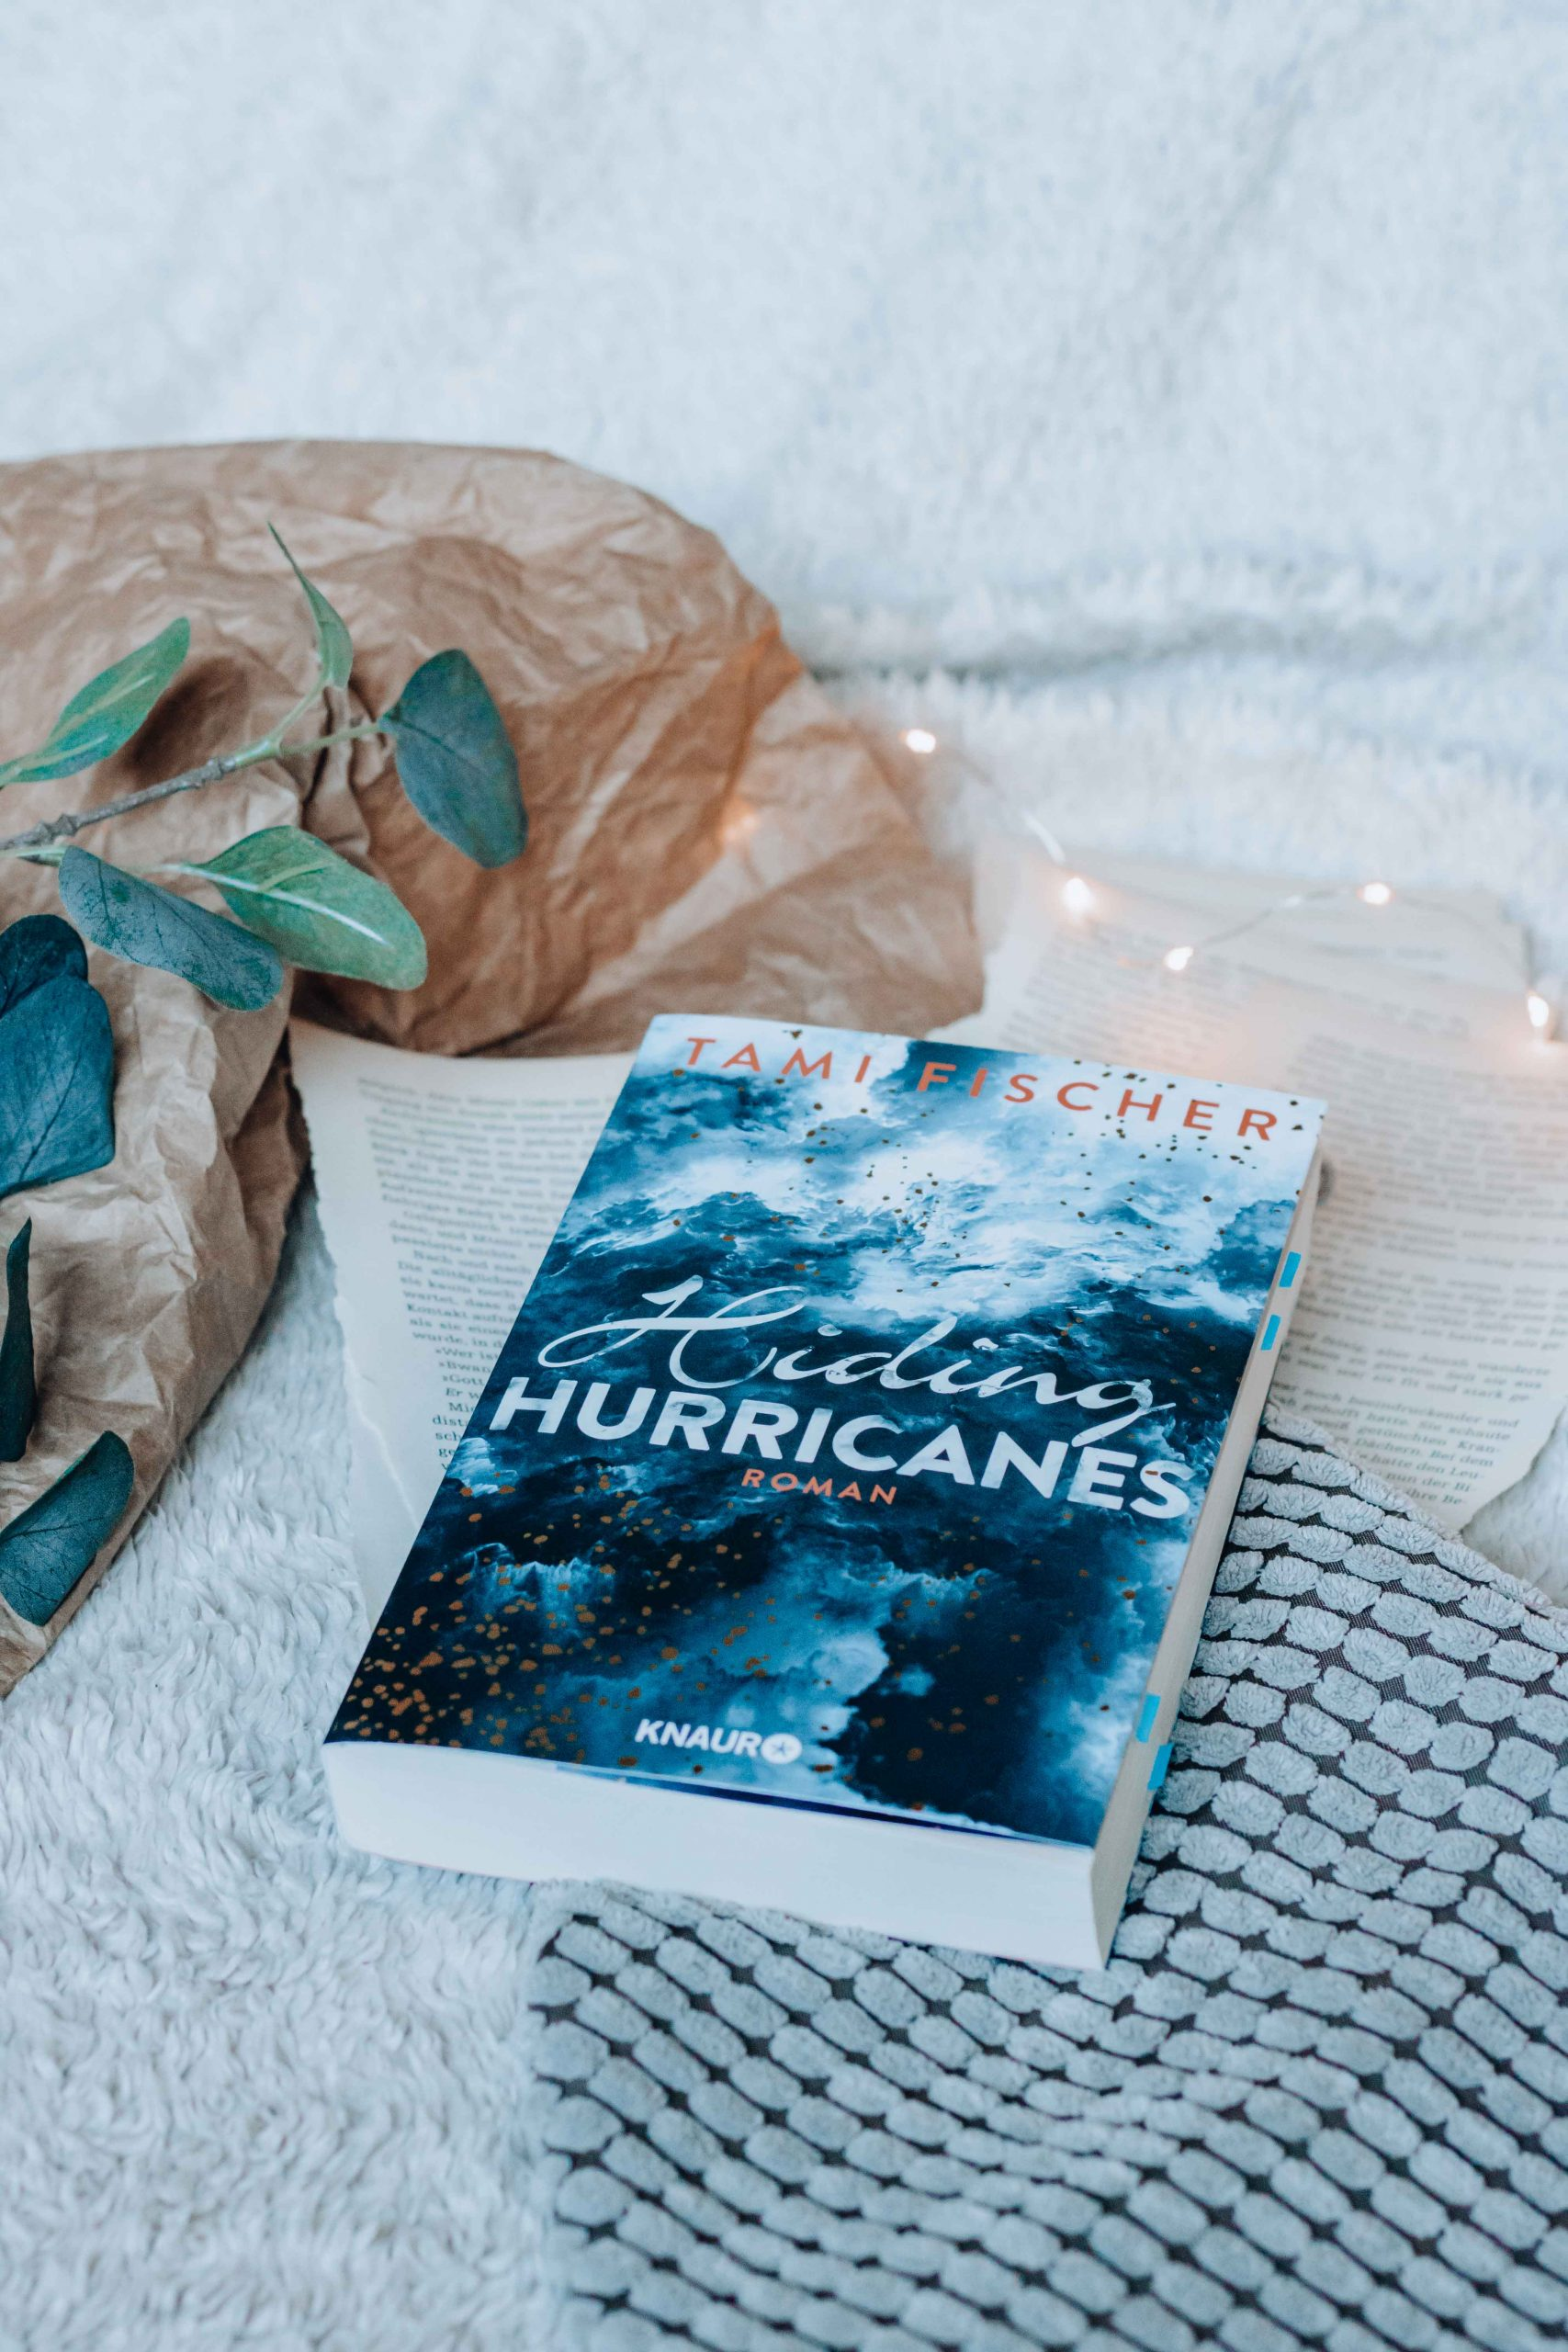 Hiding Hurricanes – Fletcher University | Tami Fischer